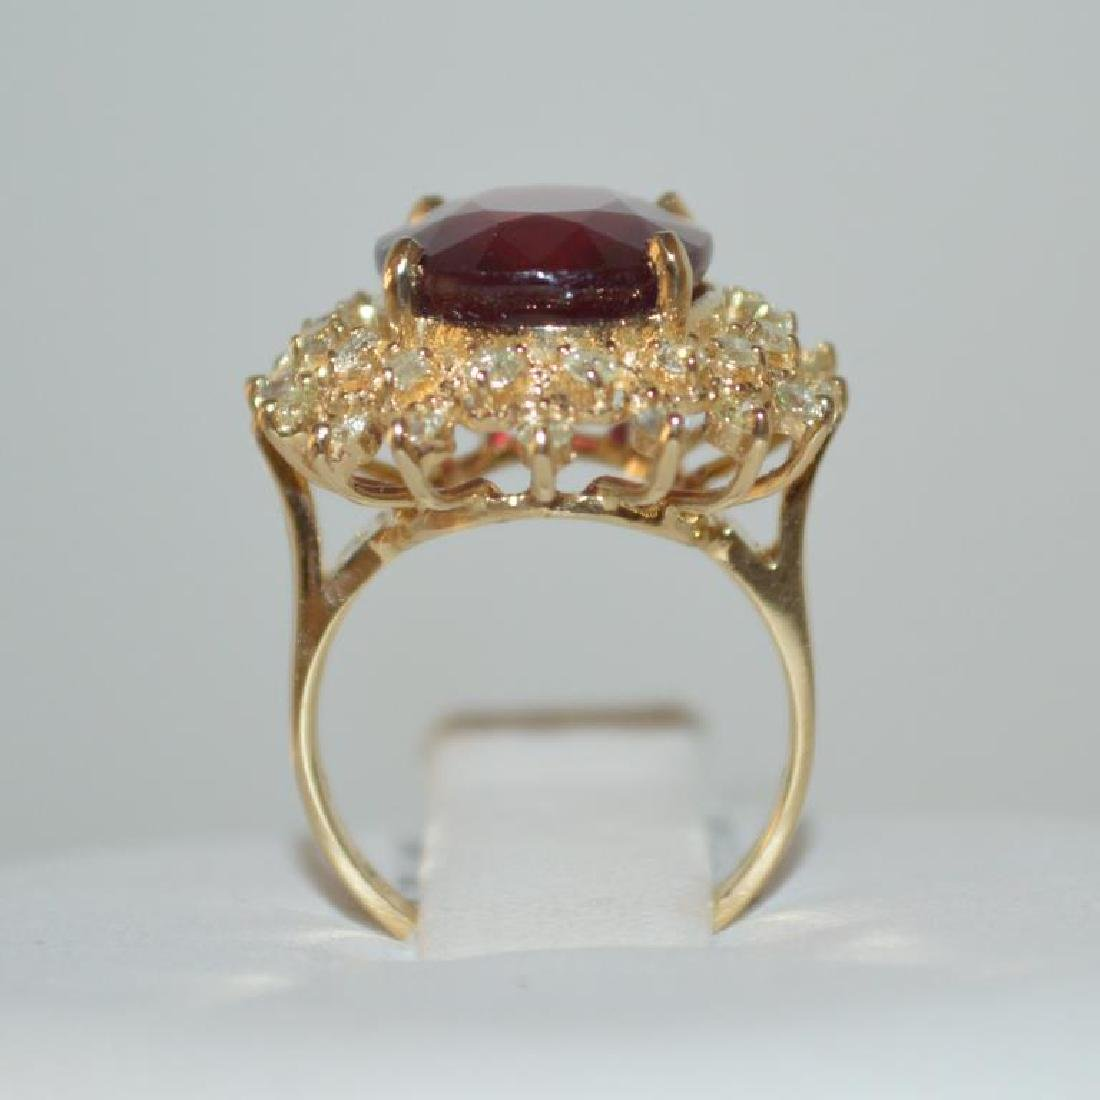 14kt yellow gold ruby and diamond ring - 3